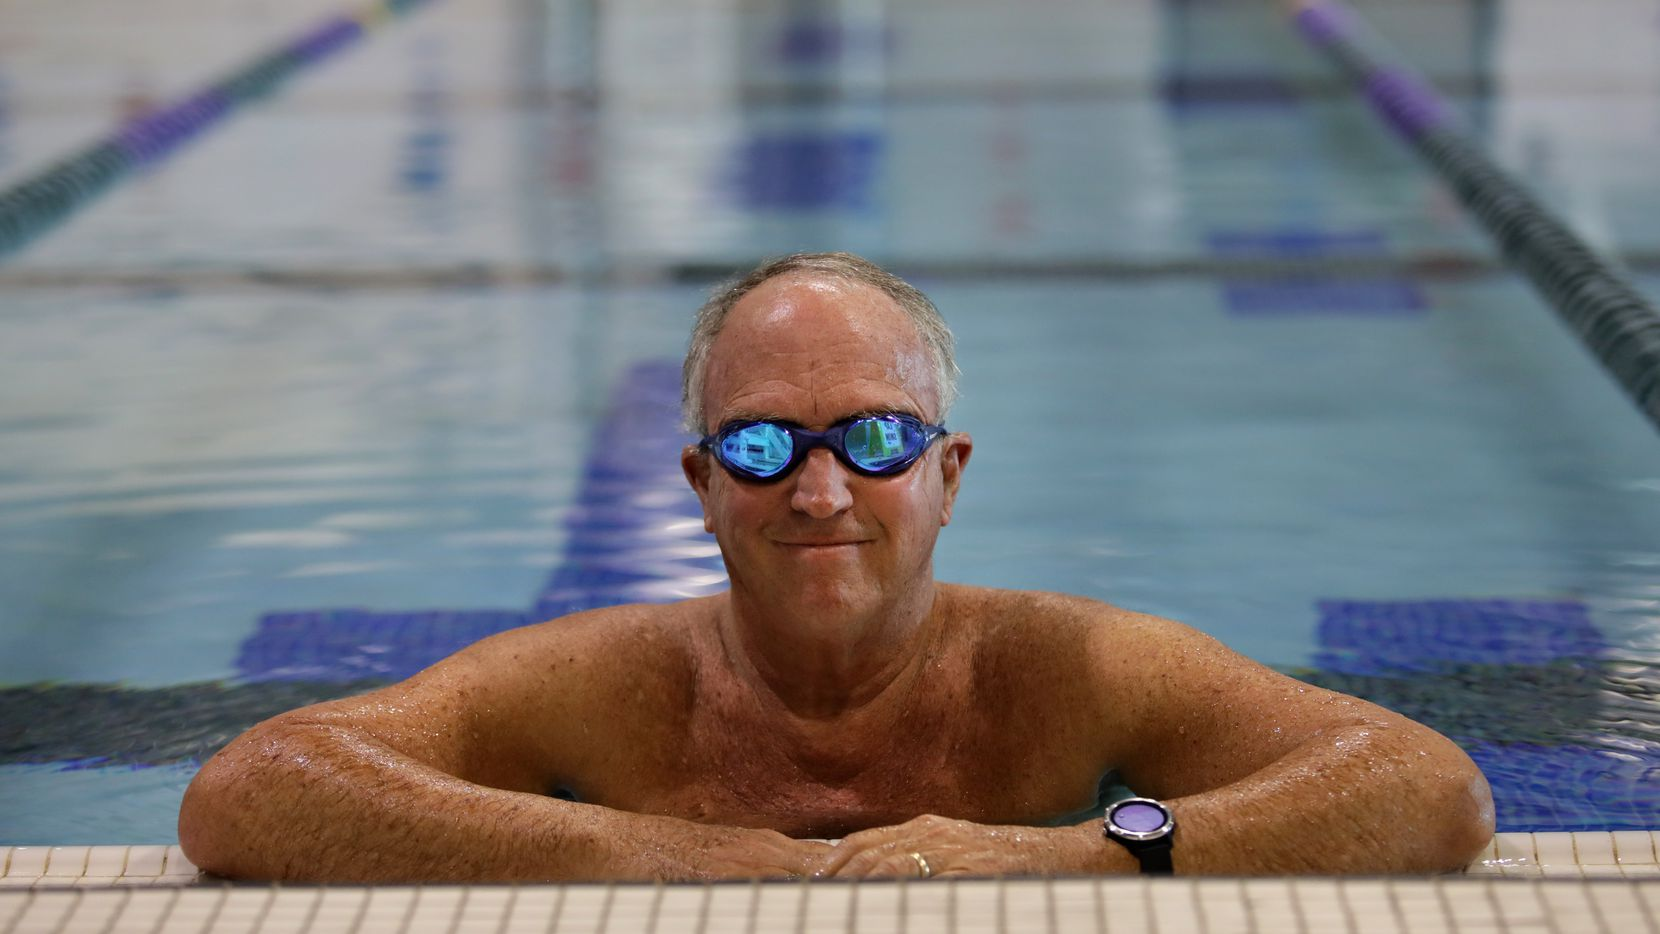 Peter Goodspeed poses for a photograph at the Plano Oak Point Recreation Center in Plano, TX, on Dec. 12, 2020.